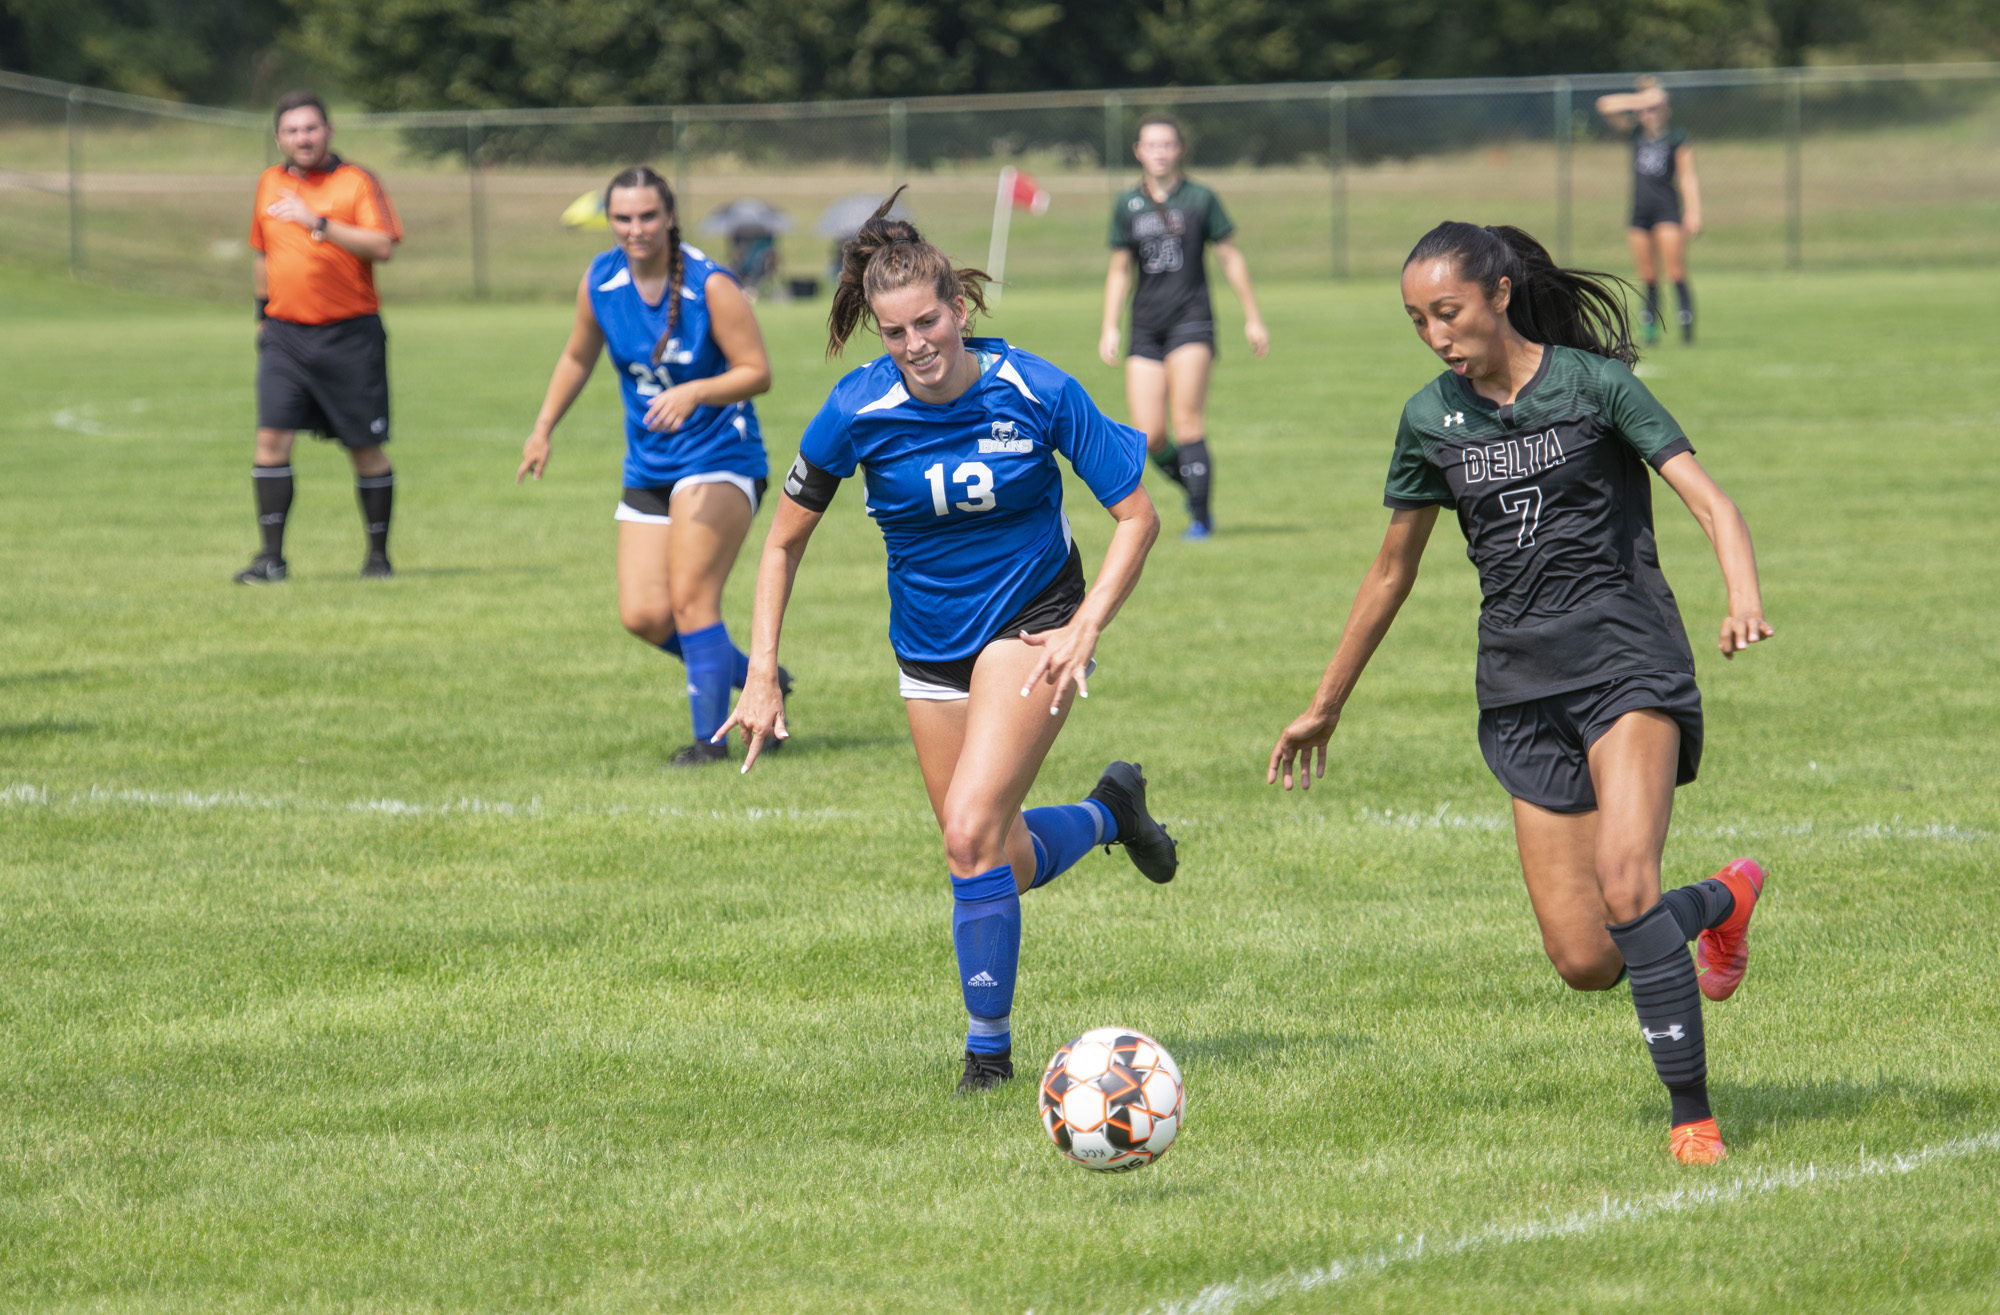 The women's soccer team competes during a home game.